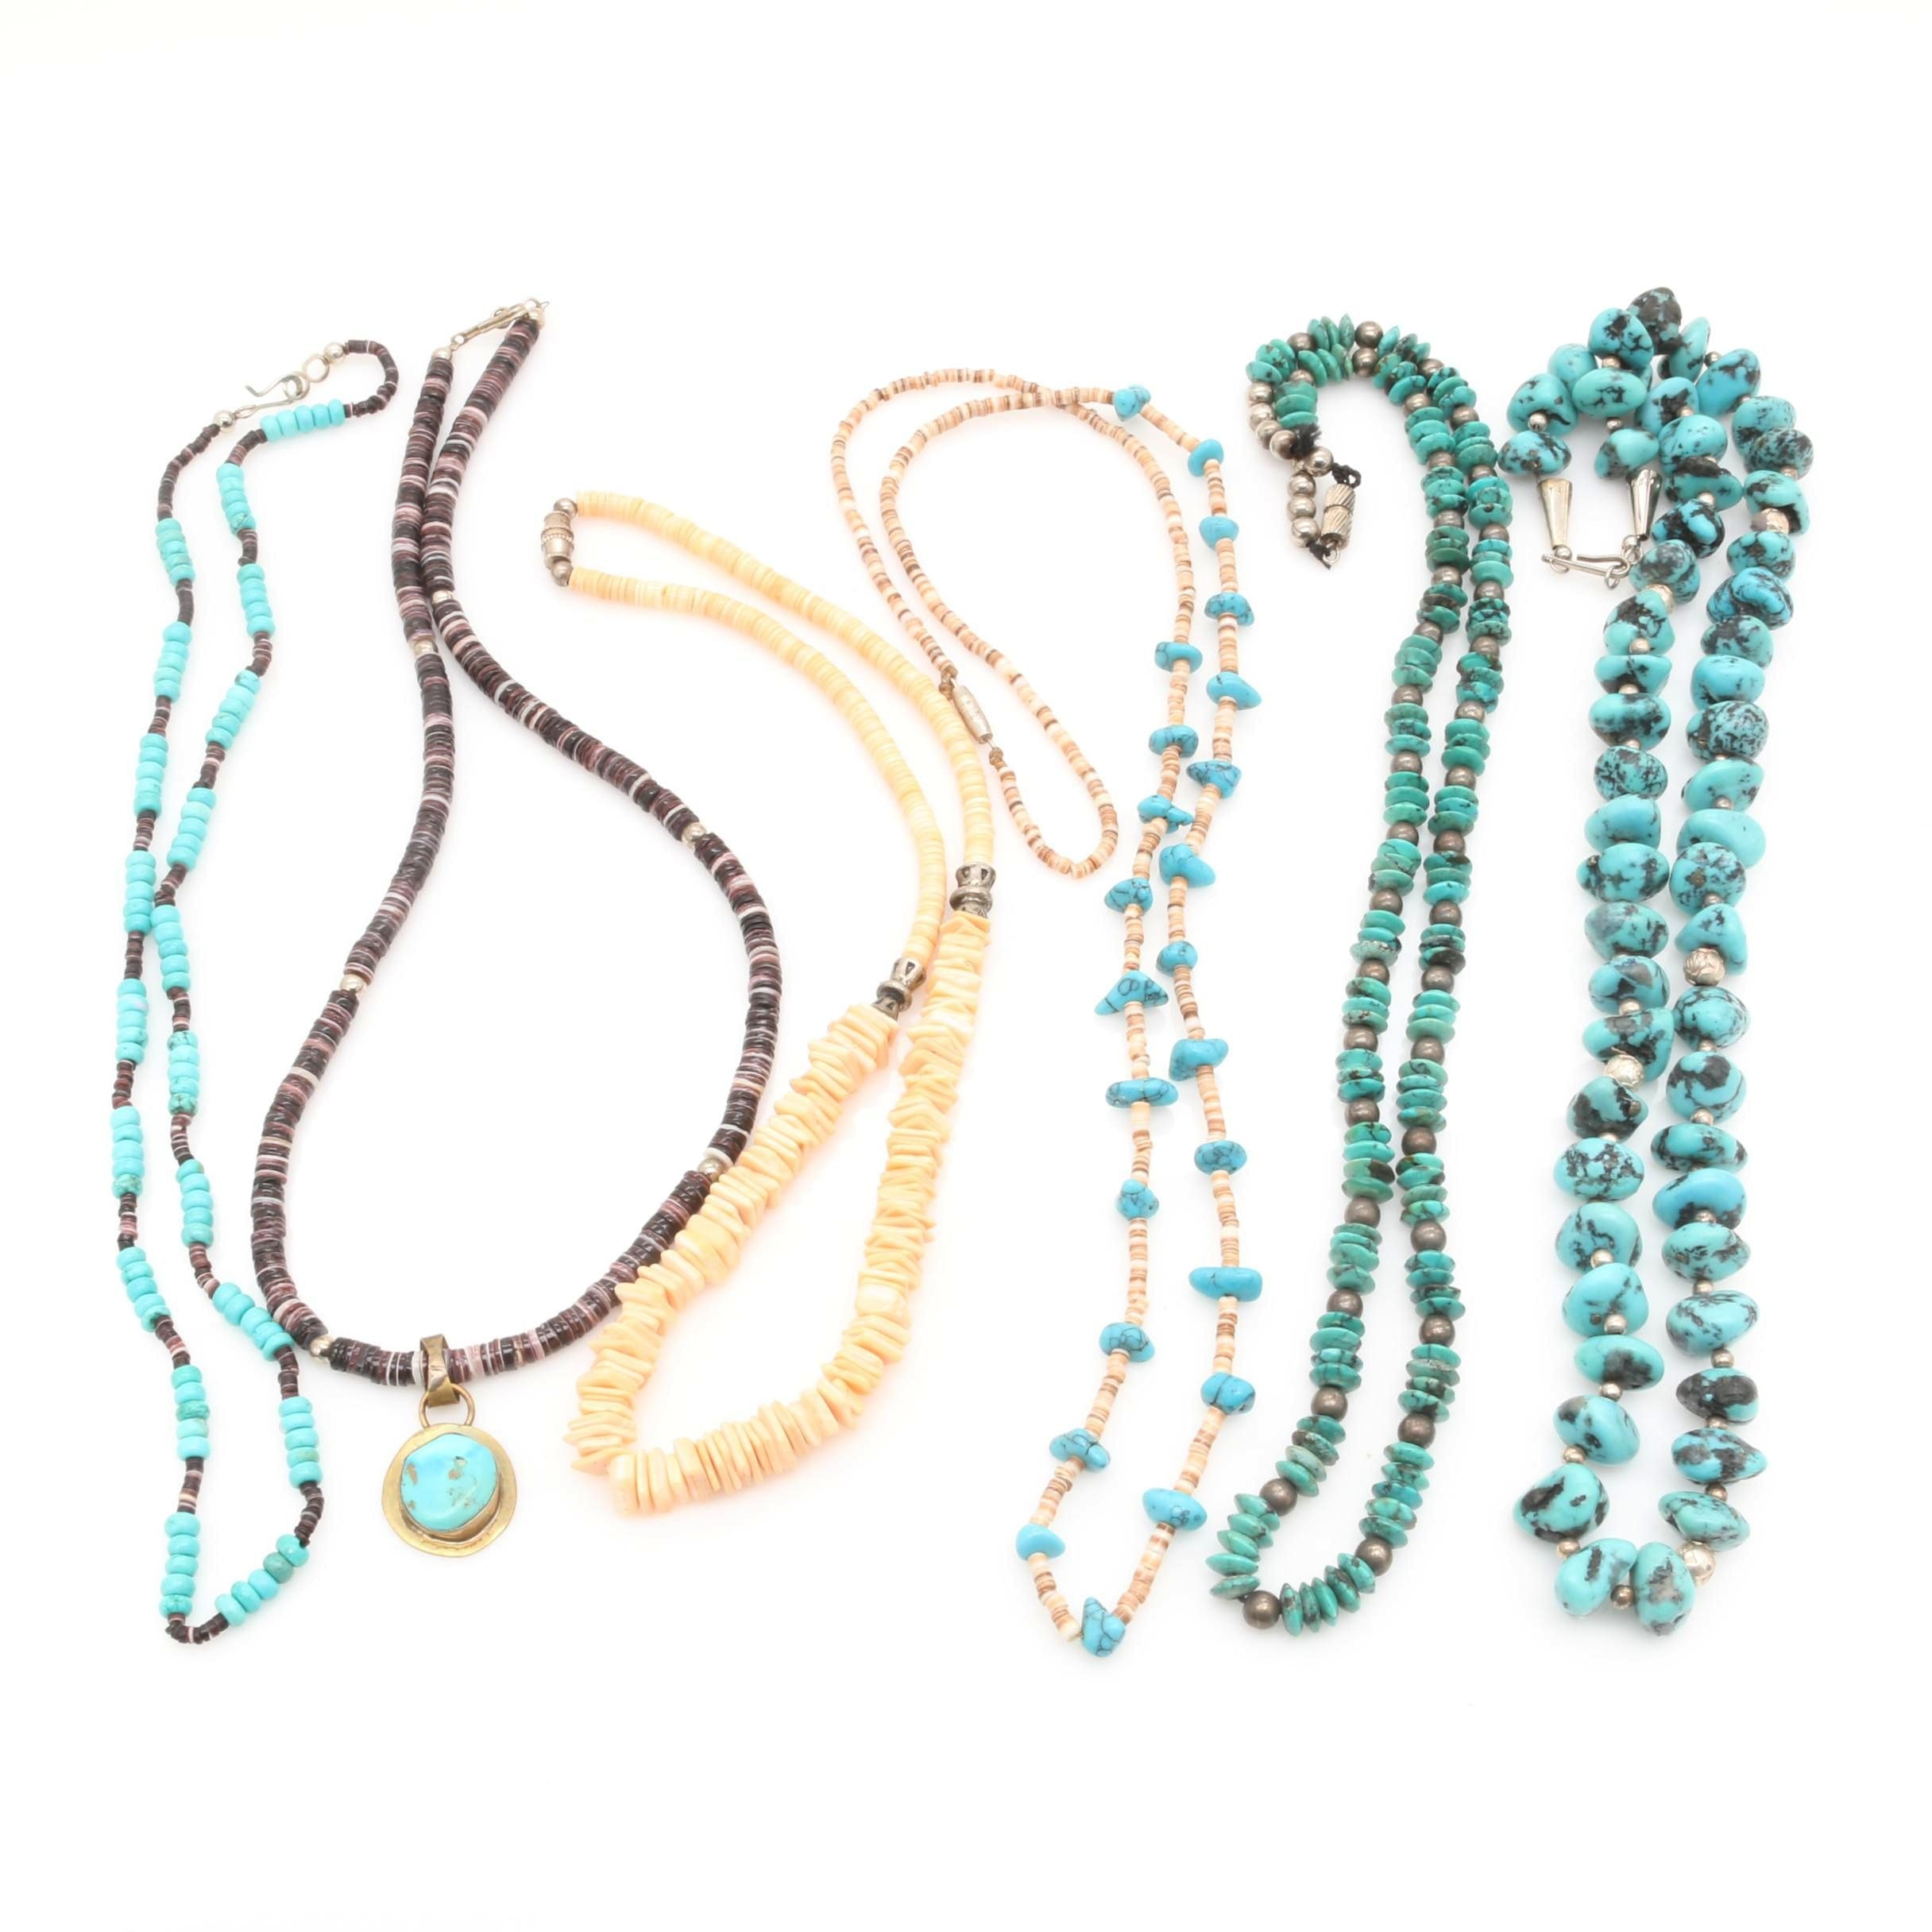 Assortment of Stabilized Turquoise, Shell and Dyed Howlite Necklaces